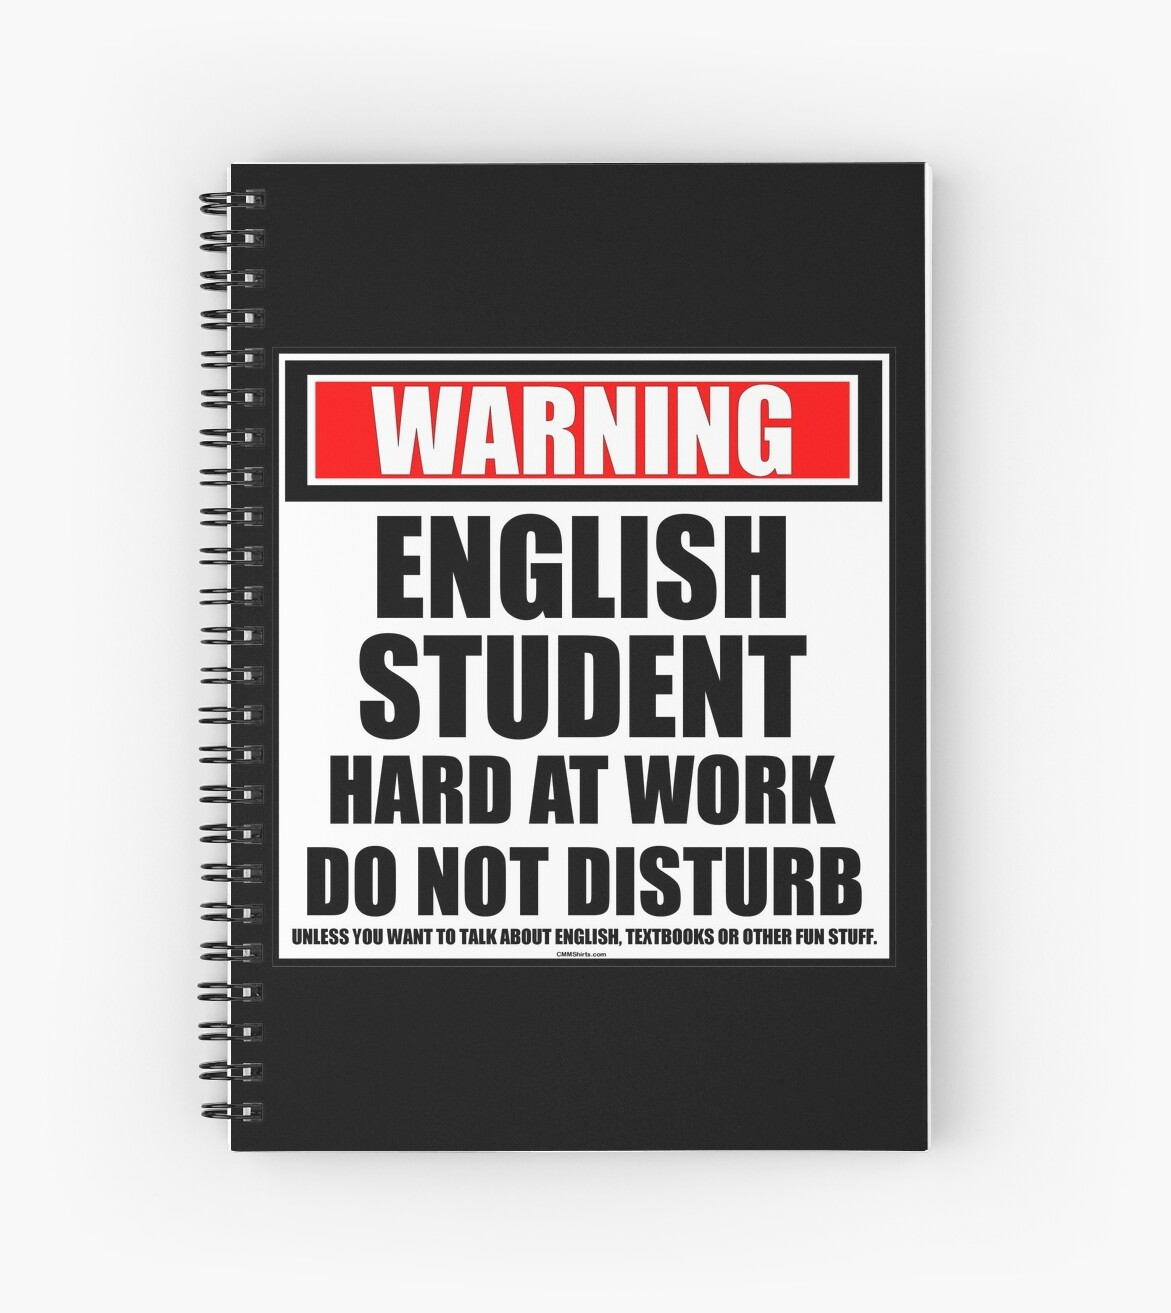 Warning English Student Hard At Work Do Not Disturb by cmmei